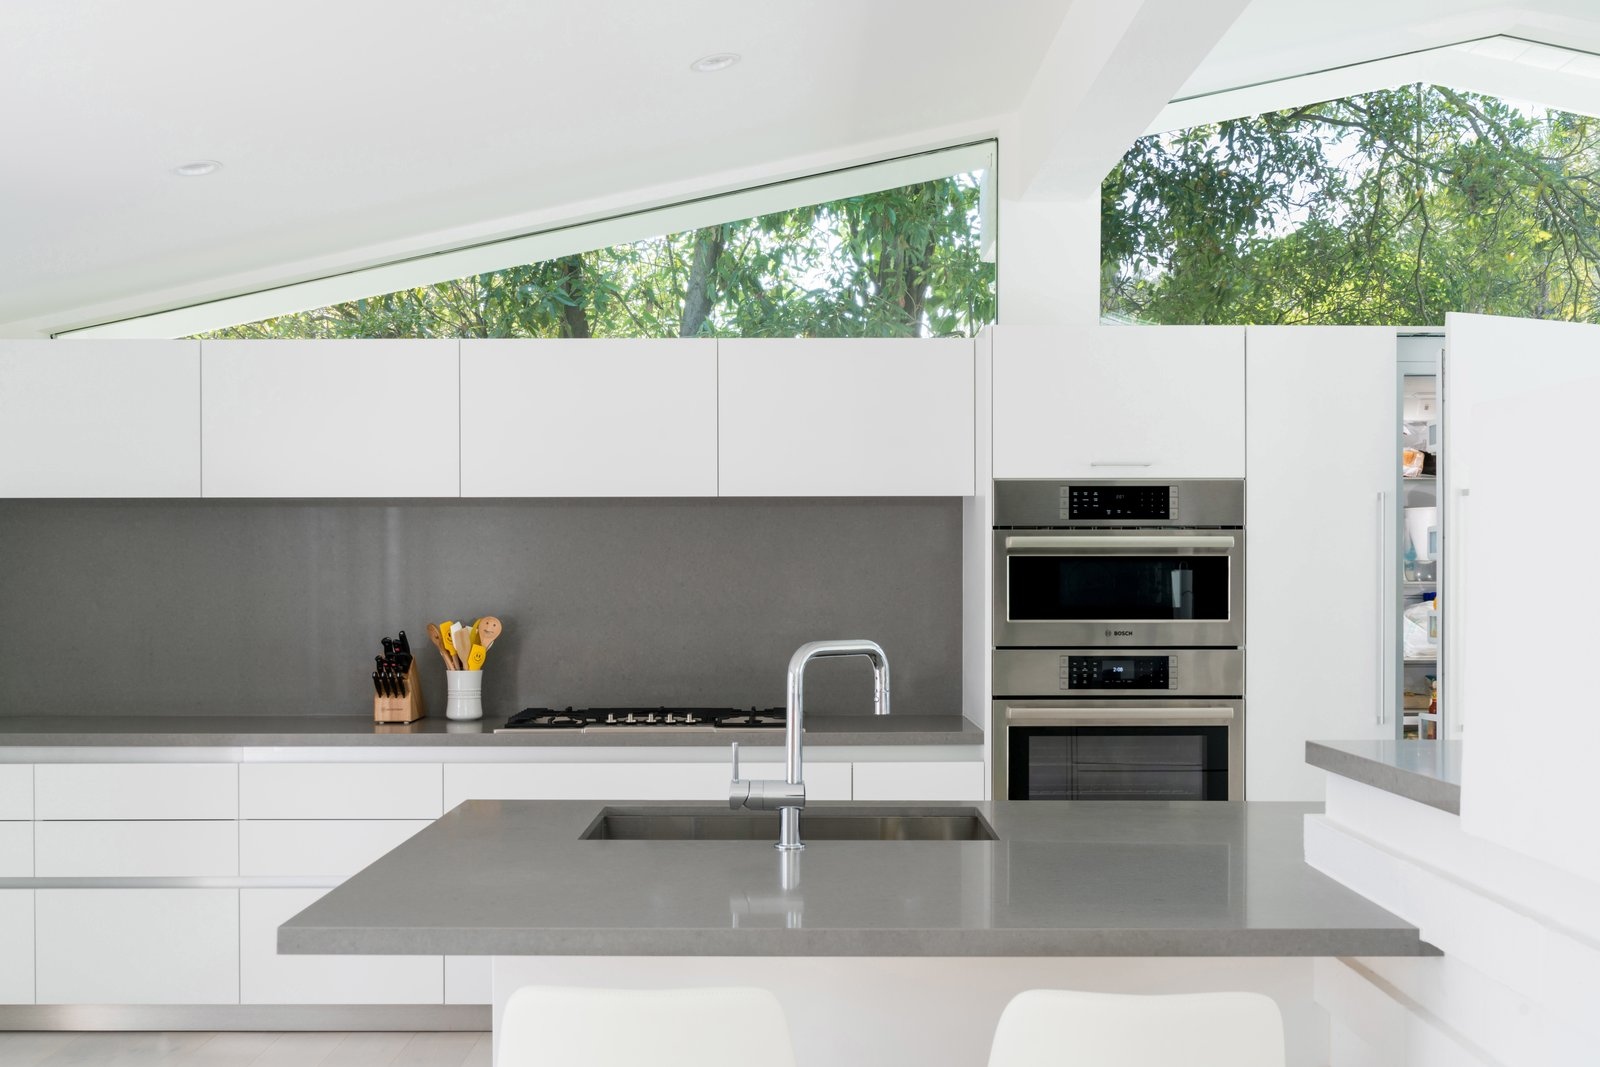 The sleek oven duo, aligned beautifully with clerestories above, sits flush with kitchen cabinetry. Tagged: Kitchen, Engineered Quartz Counter, White Cabinet, Recessed Lighting, Wall Oven, and Undermount Sink. A Breezy Midcentury Renovation in the Hollywood Hills - Photo 3 of 3